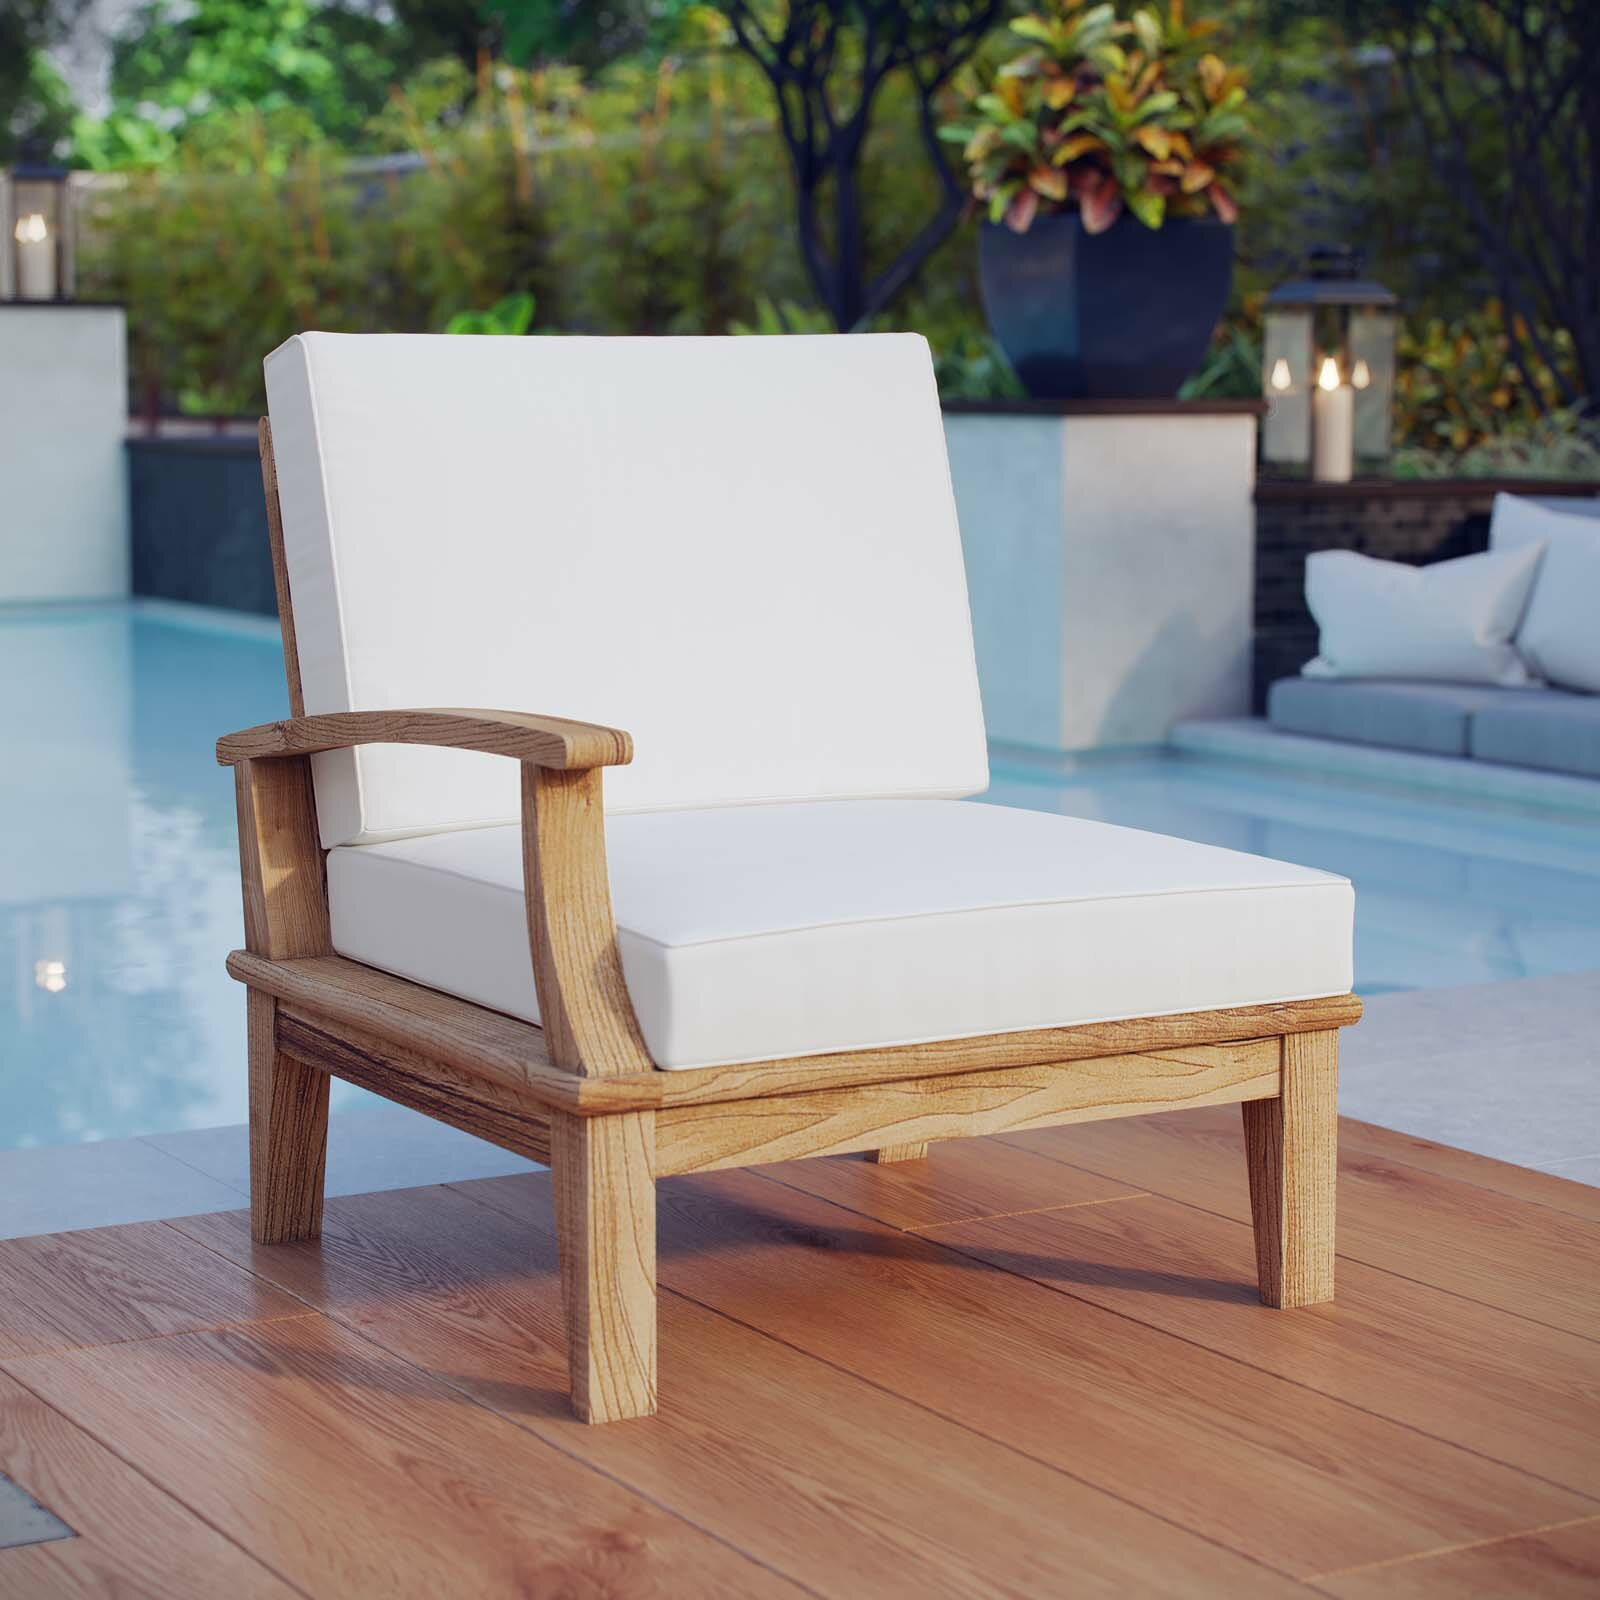 Beachcrest Home Teak Patio Chair With